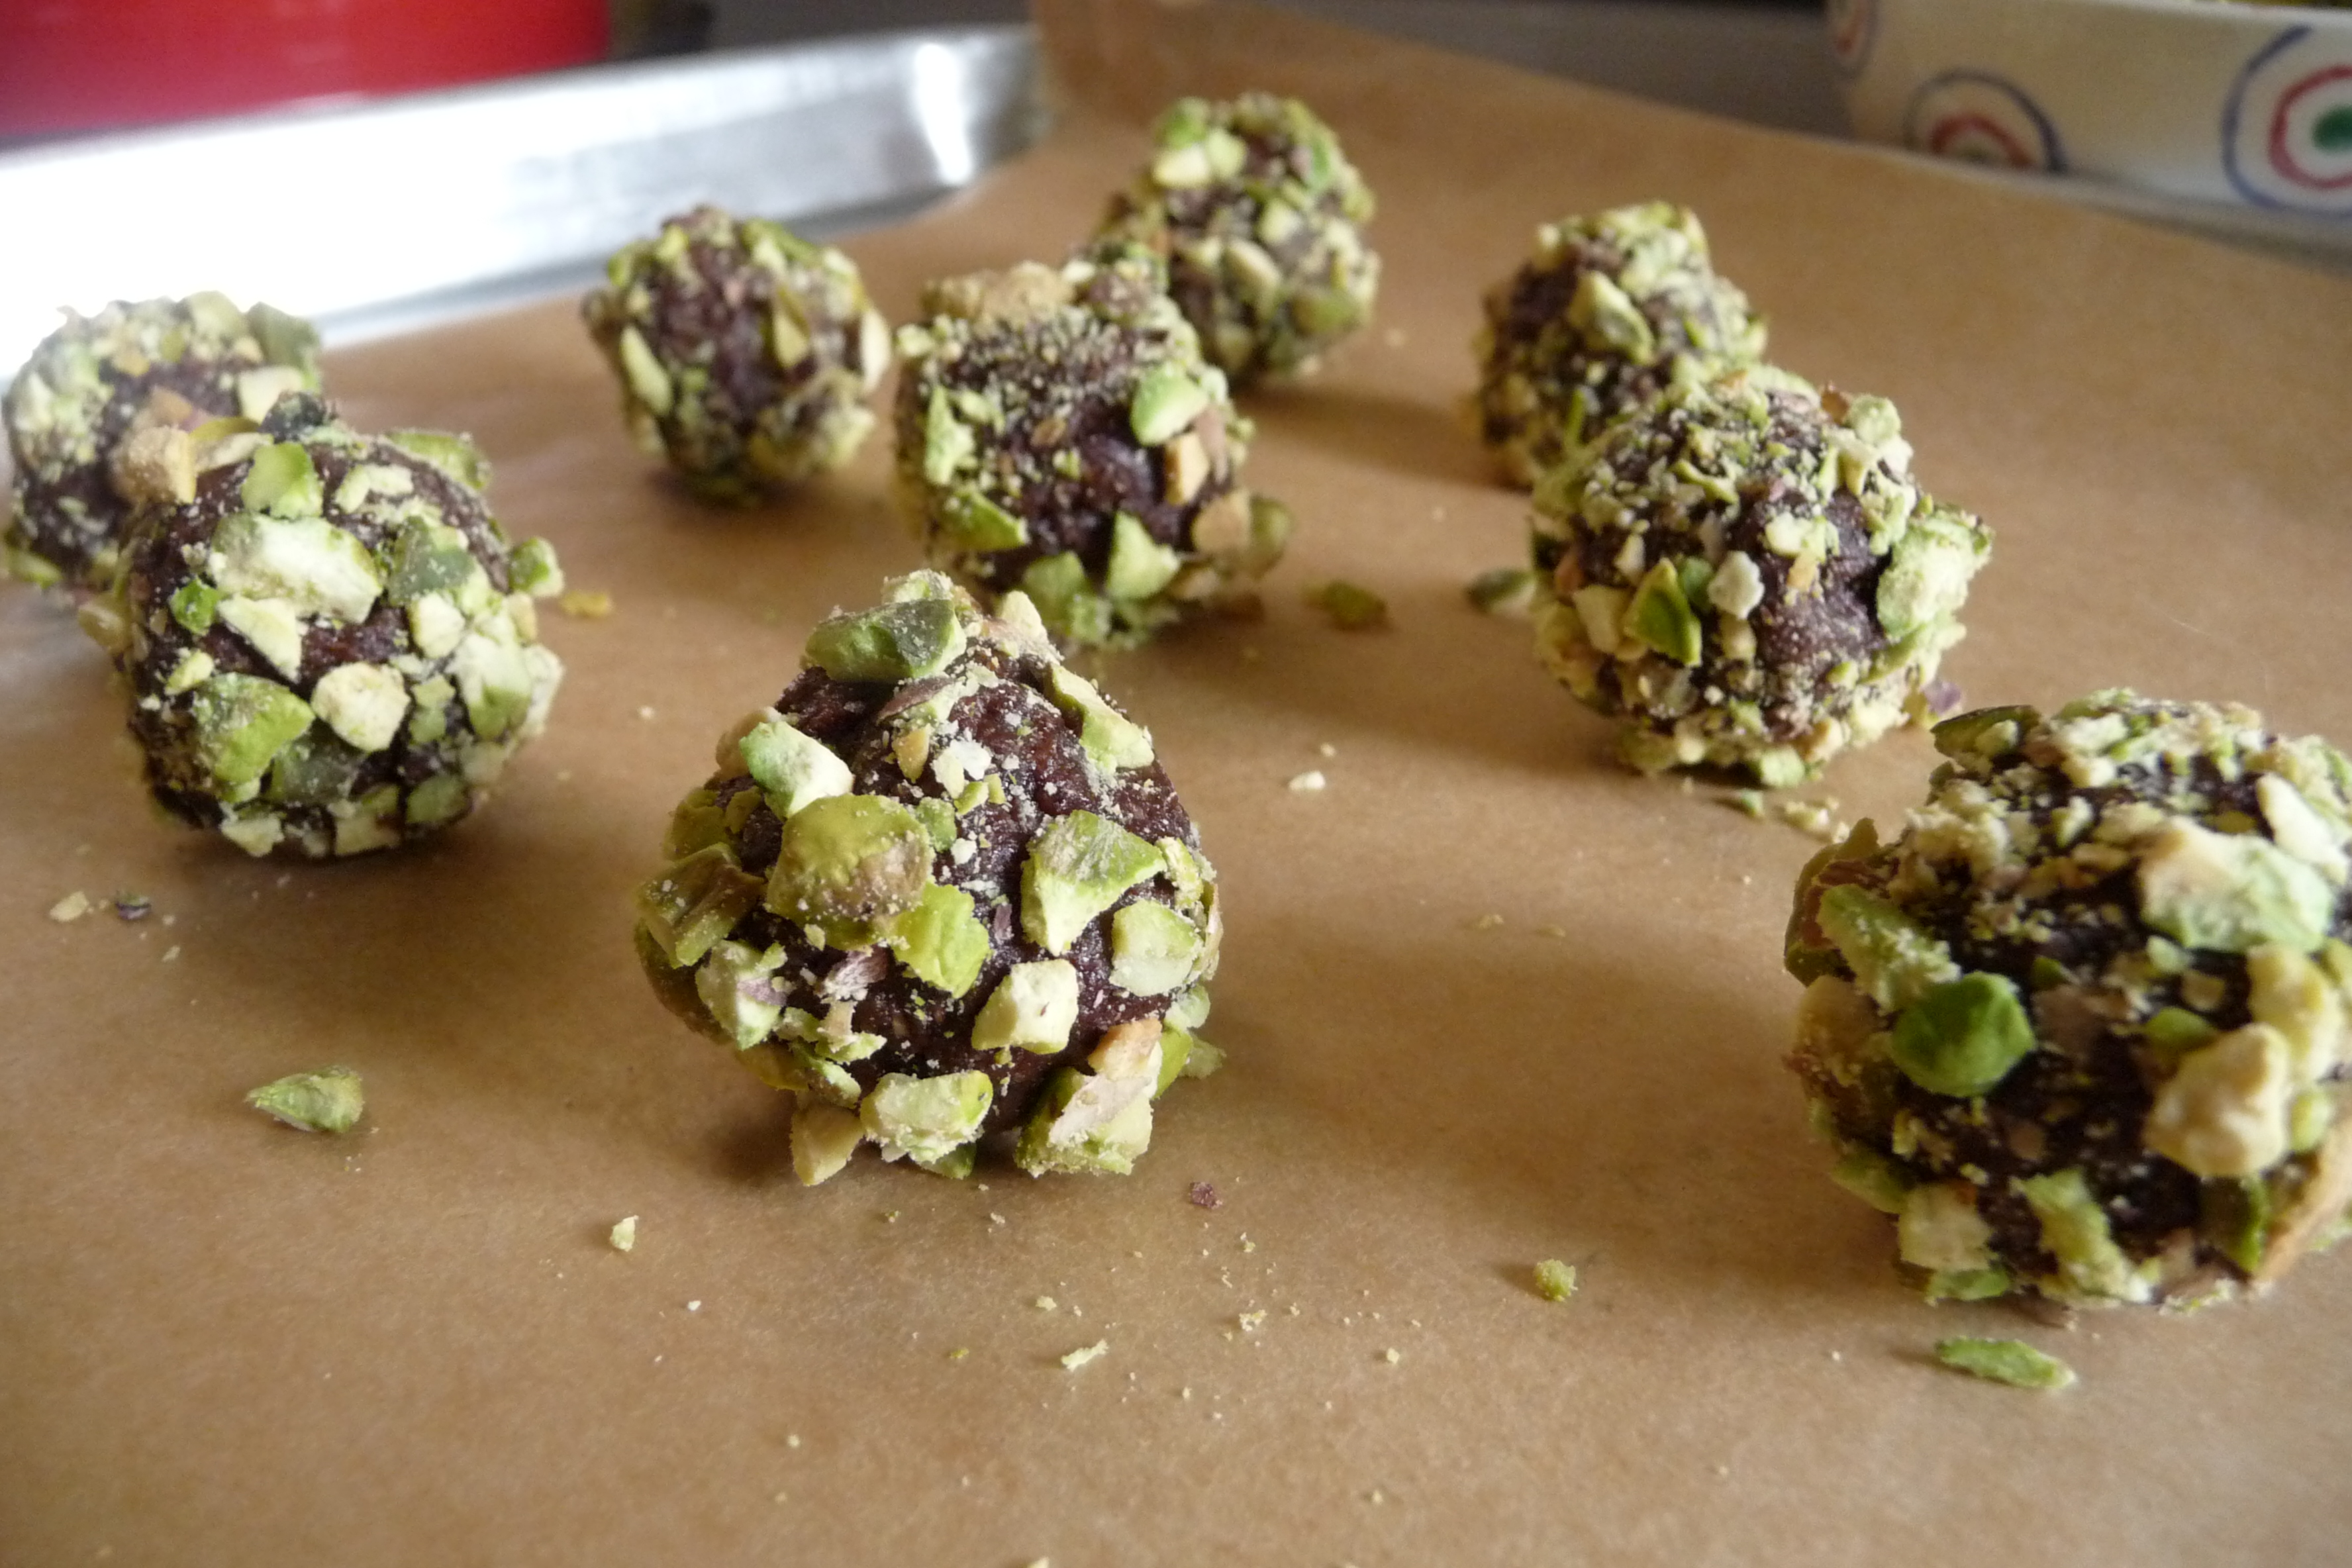 Cocoa-Date Truffles with Pistachios and Orange | Anything But Academia